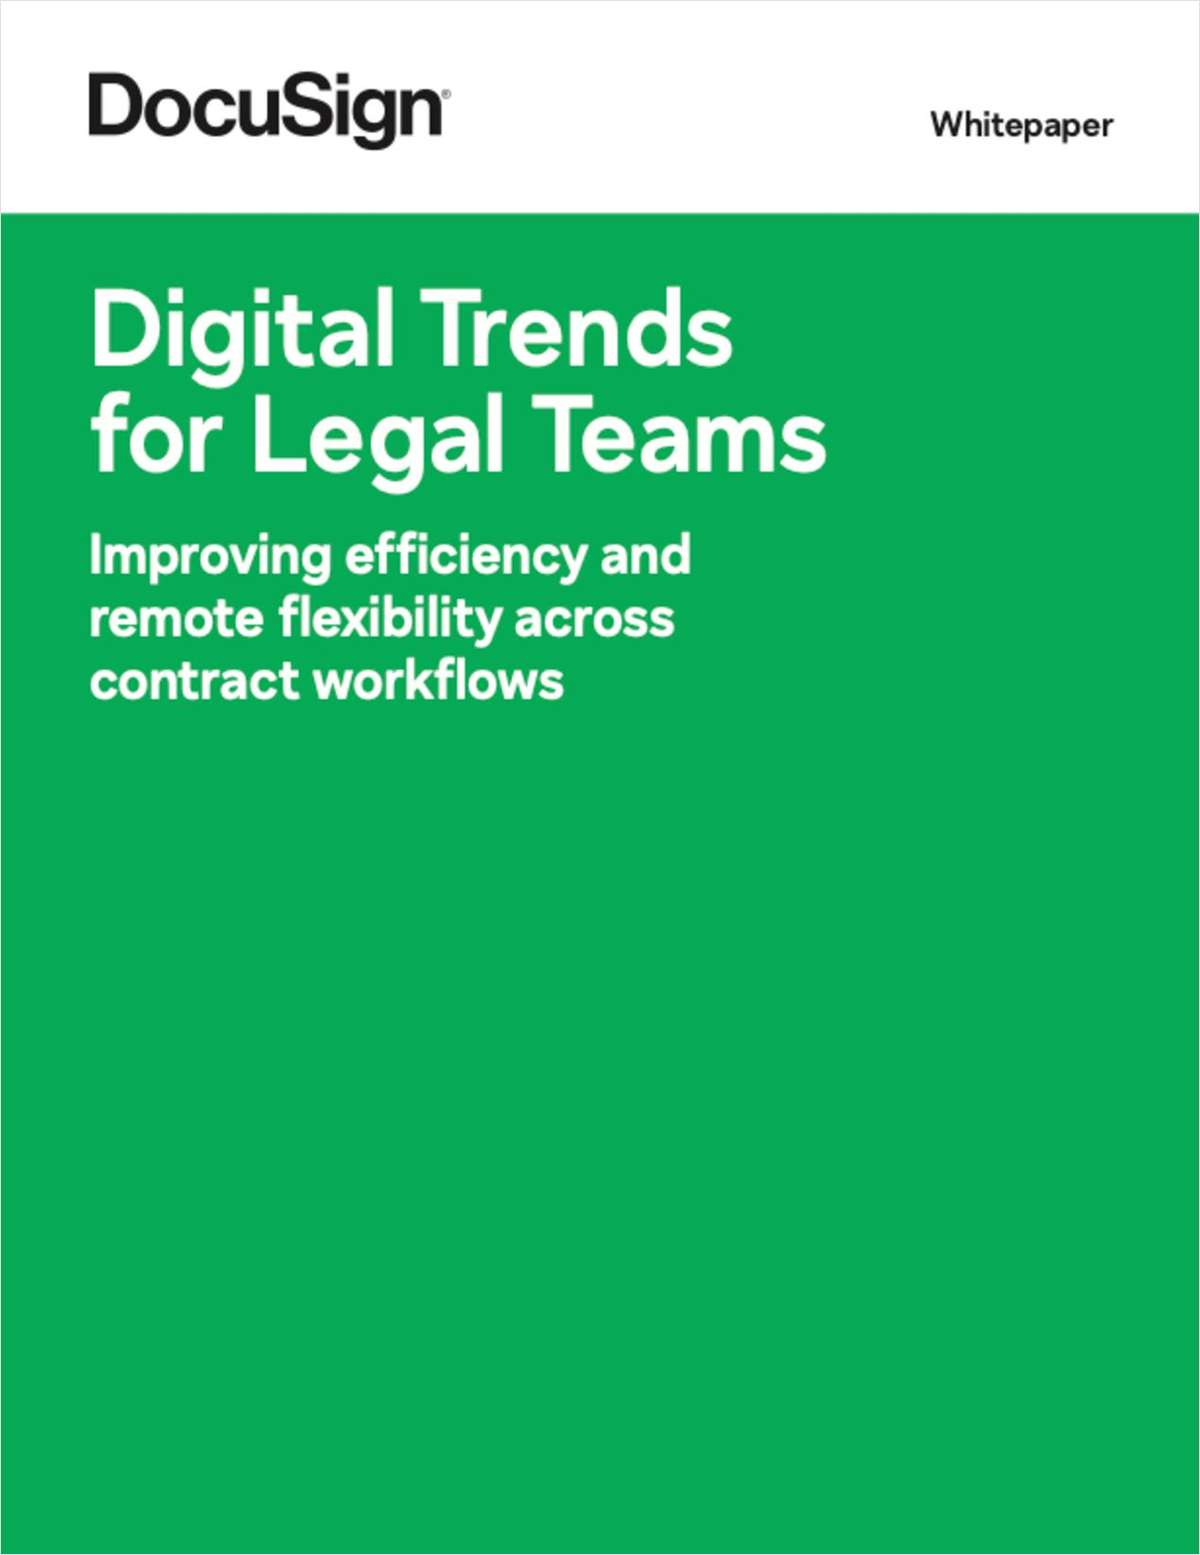 Digital Trends for Legal Teams: Improving Efficiency and Remote Flexibility Across Contract Workflows